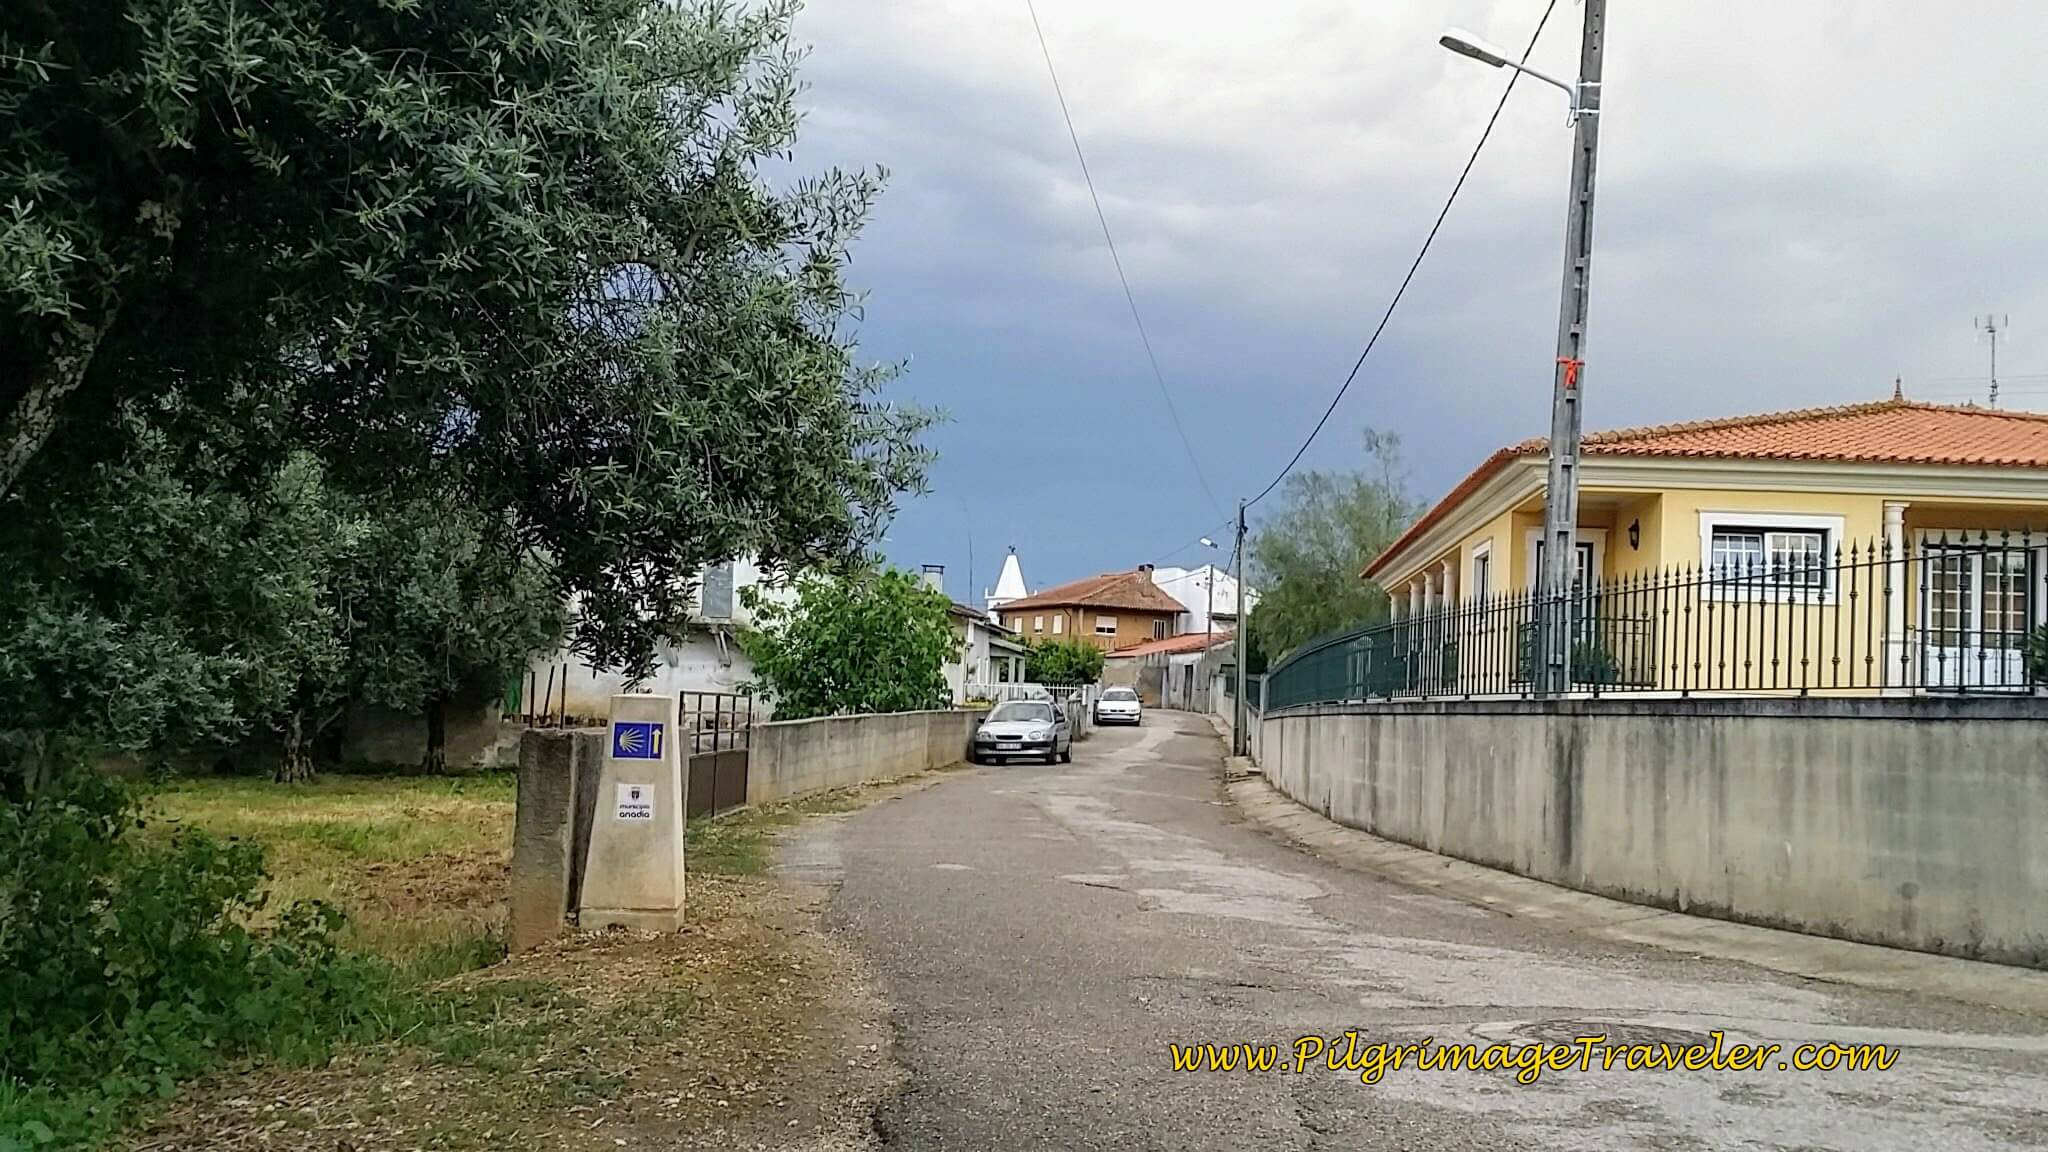 Entering the town of Alpalhão in the Municipality of Anadia on the Portuguese Way